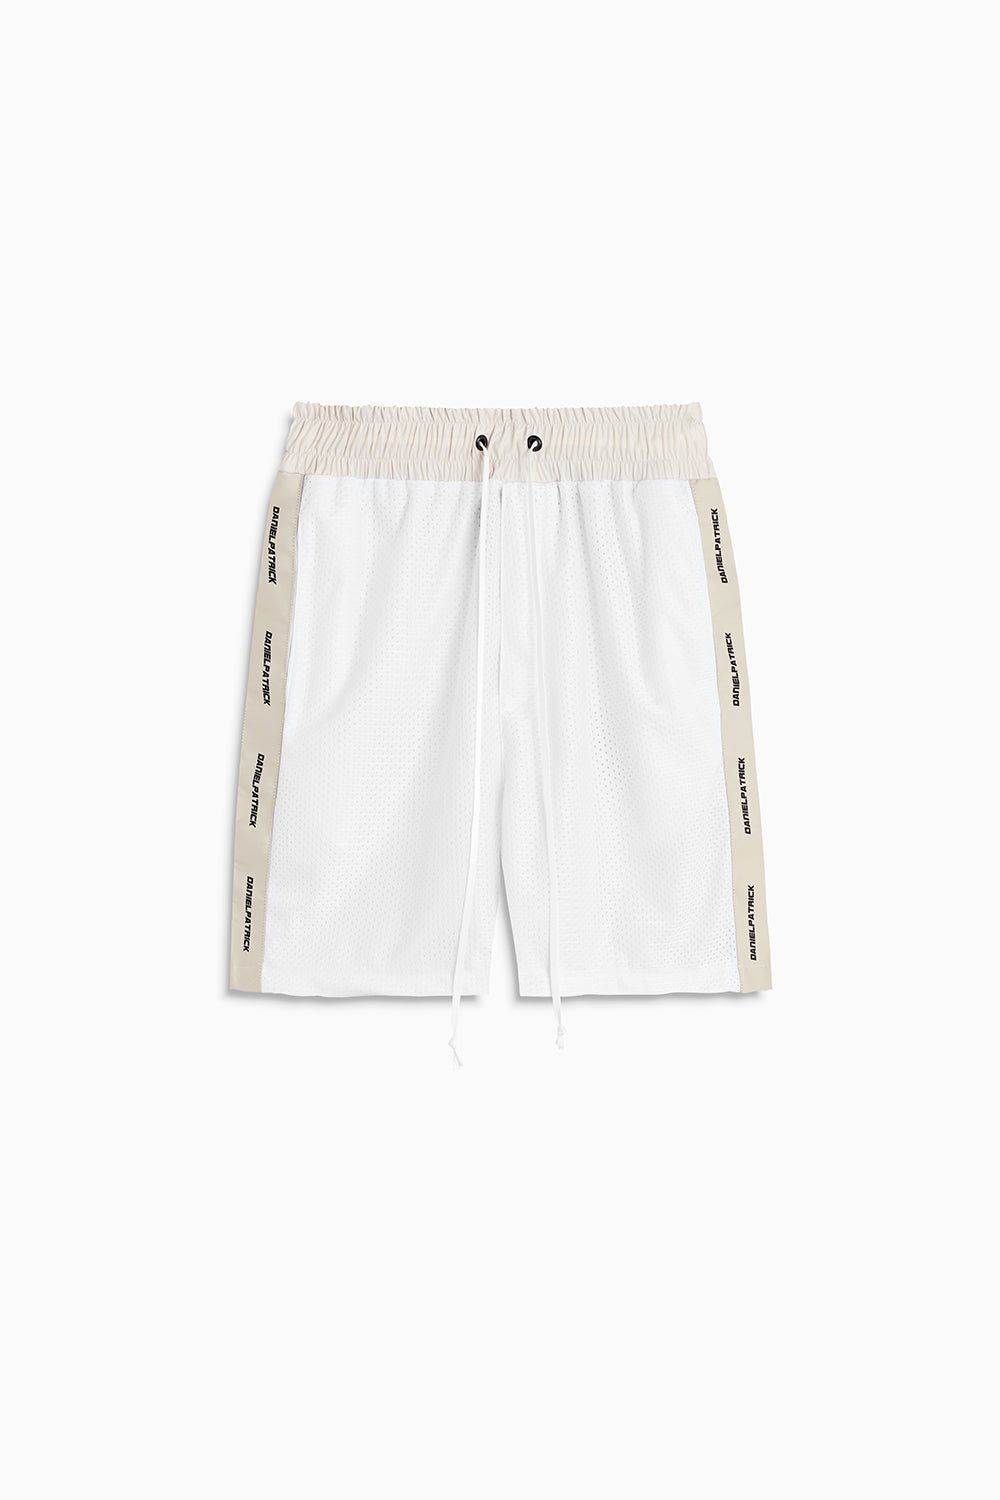 mesh gym short in white/ivory by daniel patrick